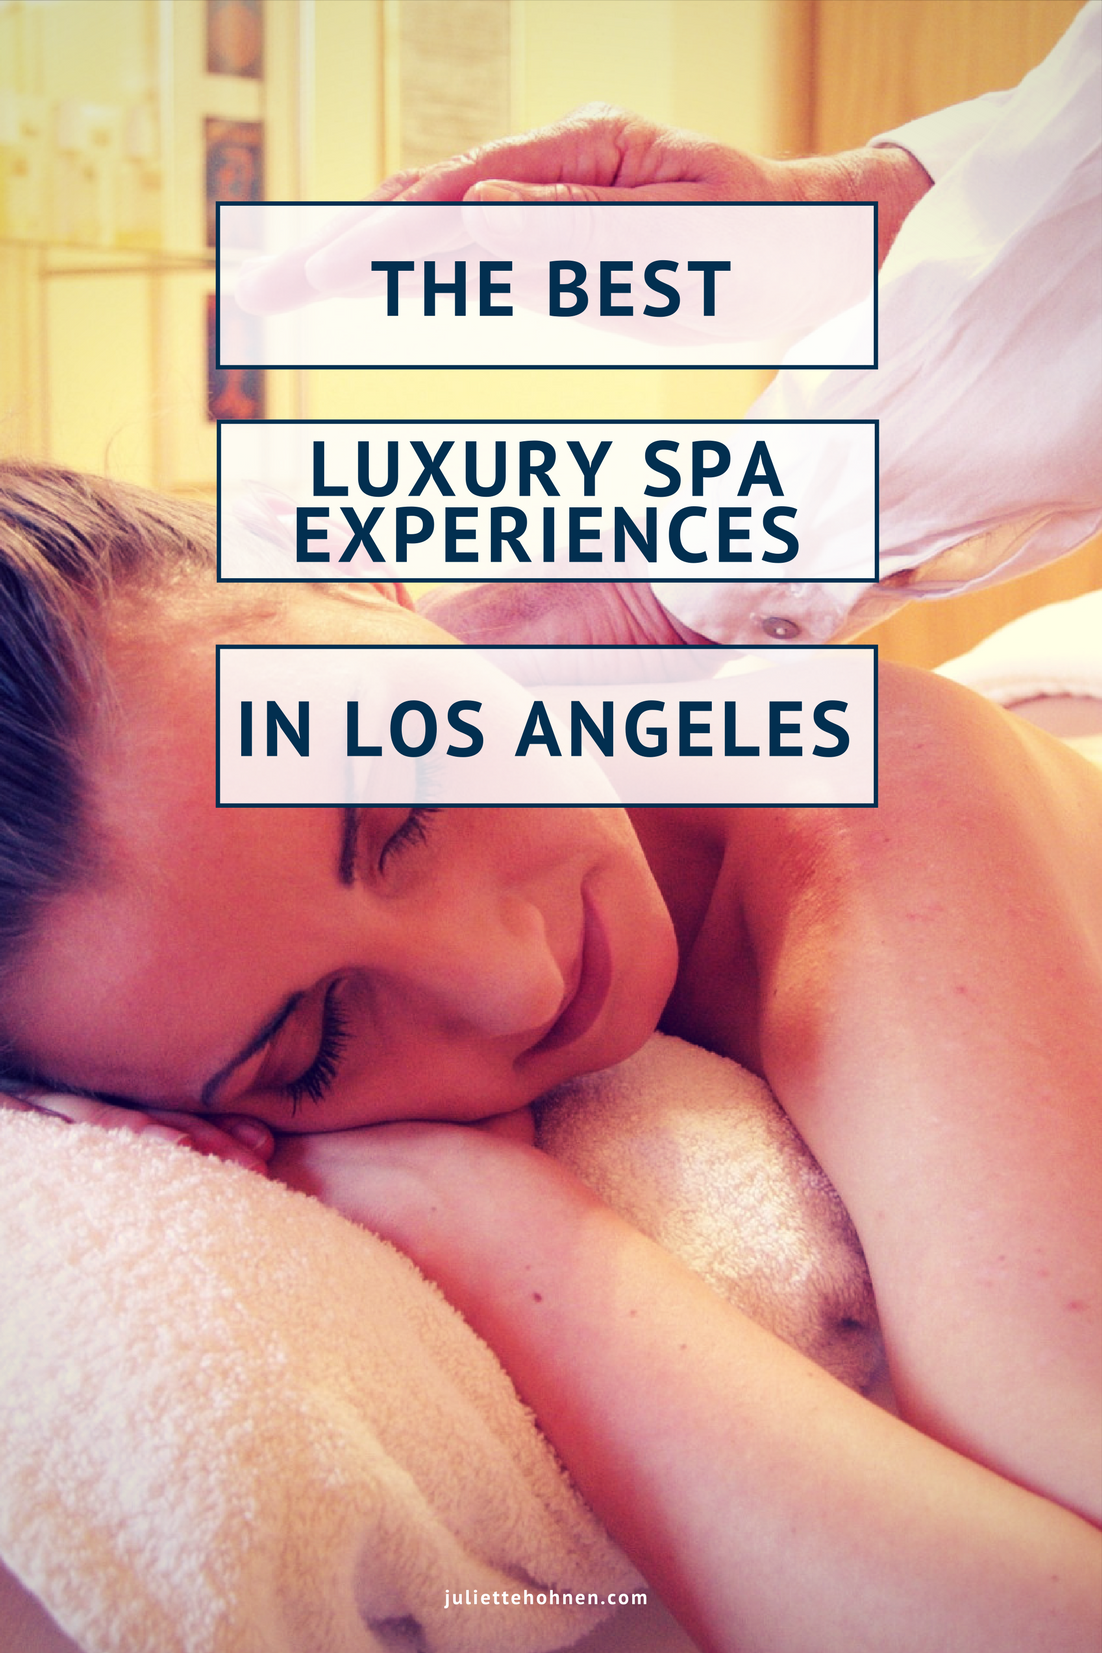 The Best Luxury Spa Experiences in Los Angeles